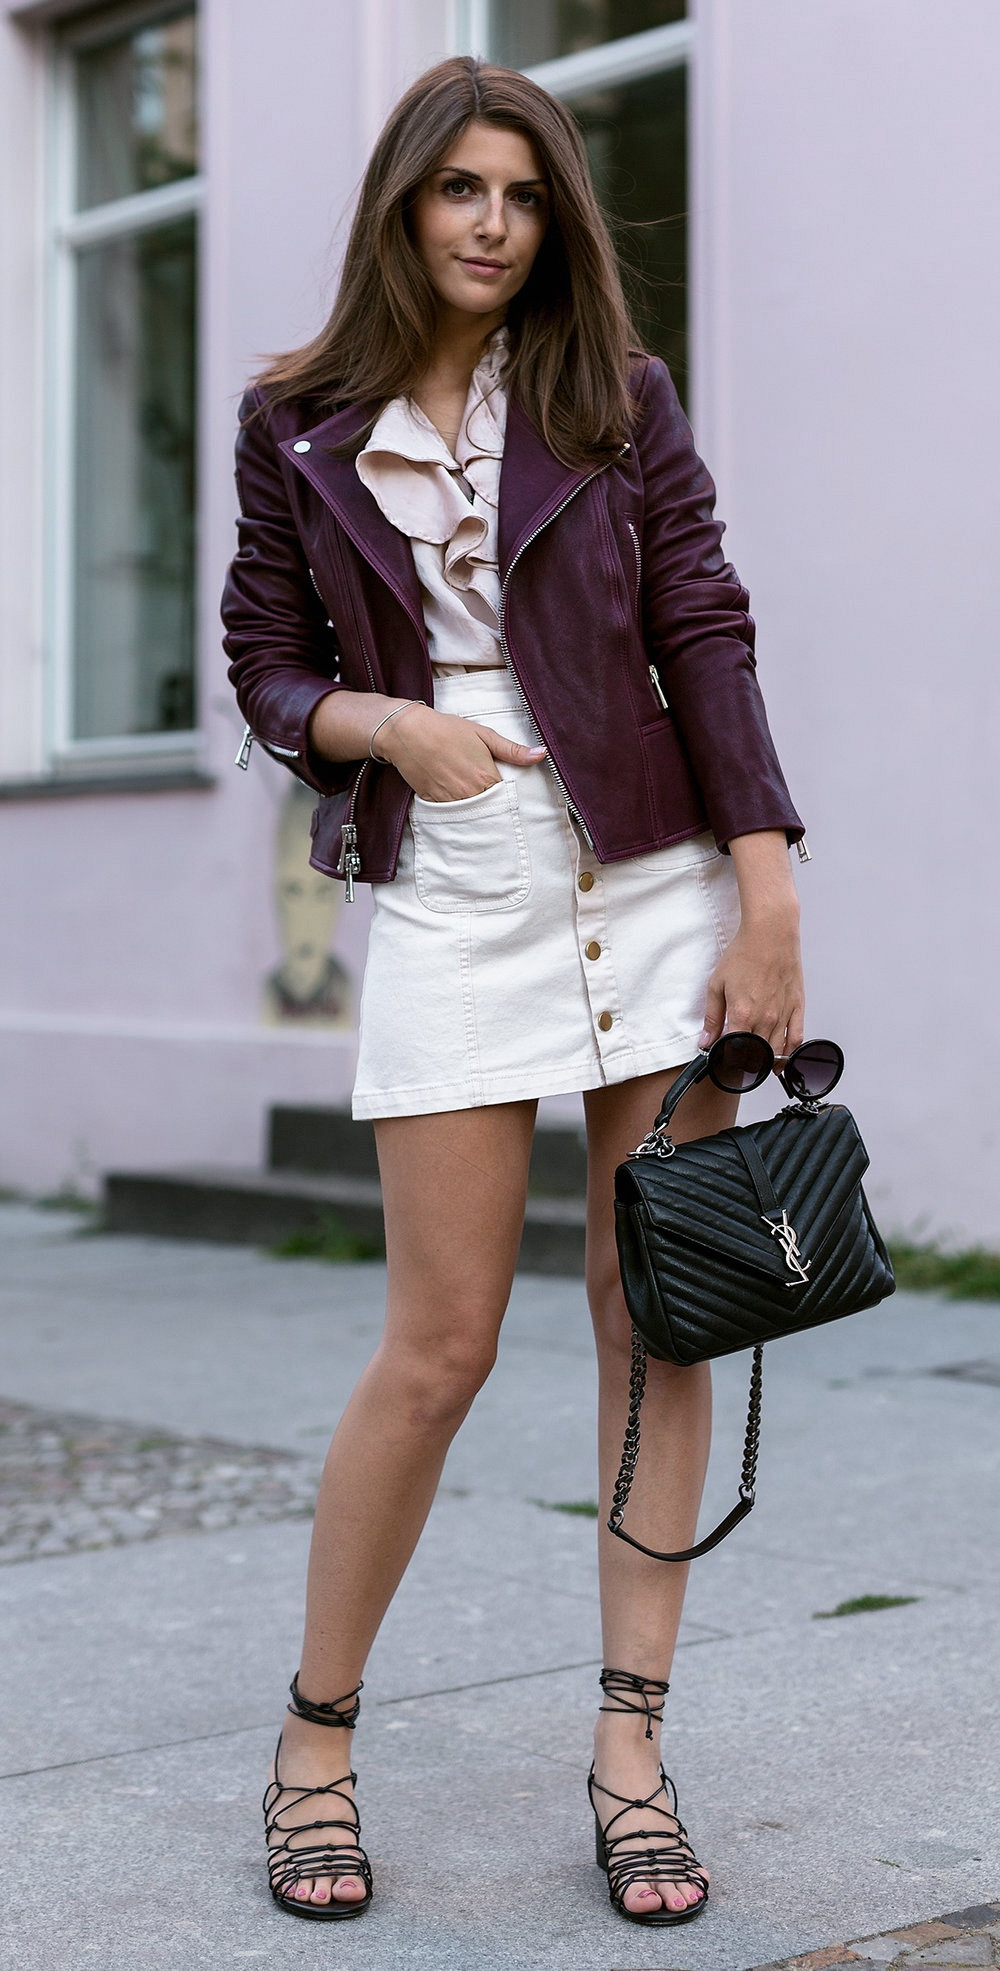 2019 year for girls- Outfit trendy ideas photo